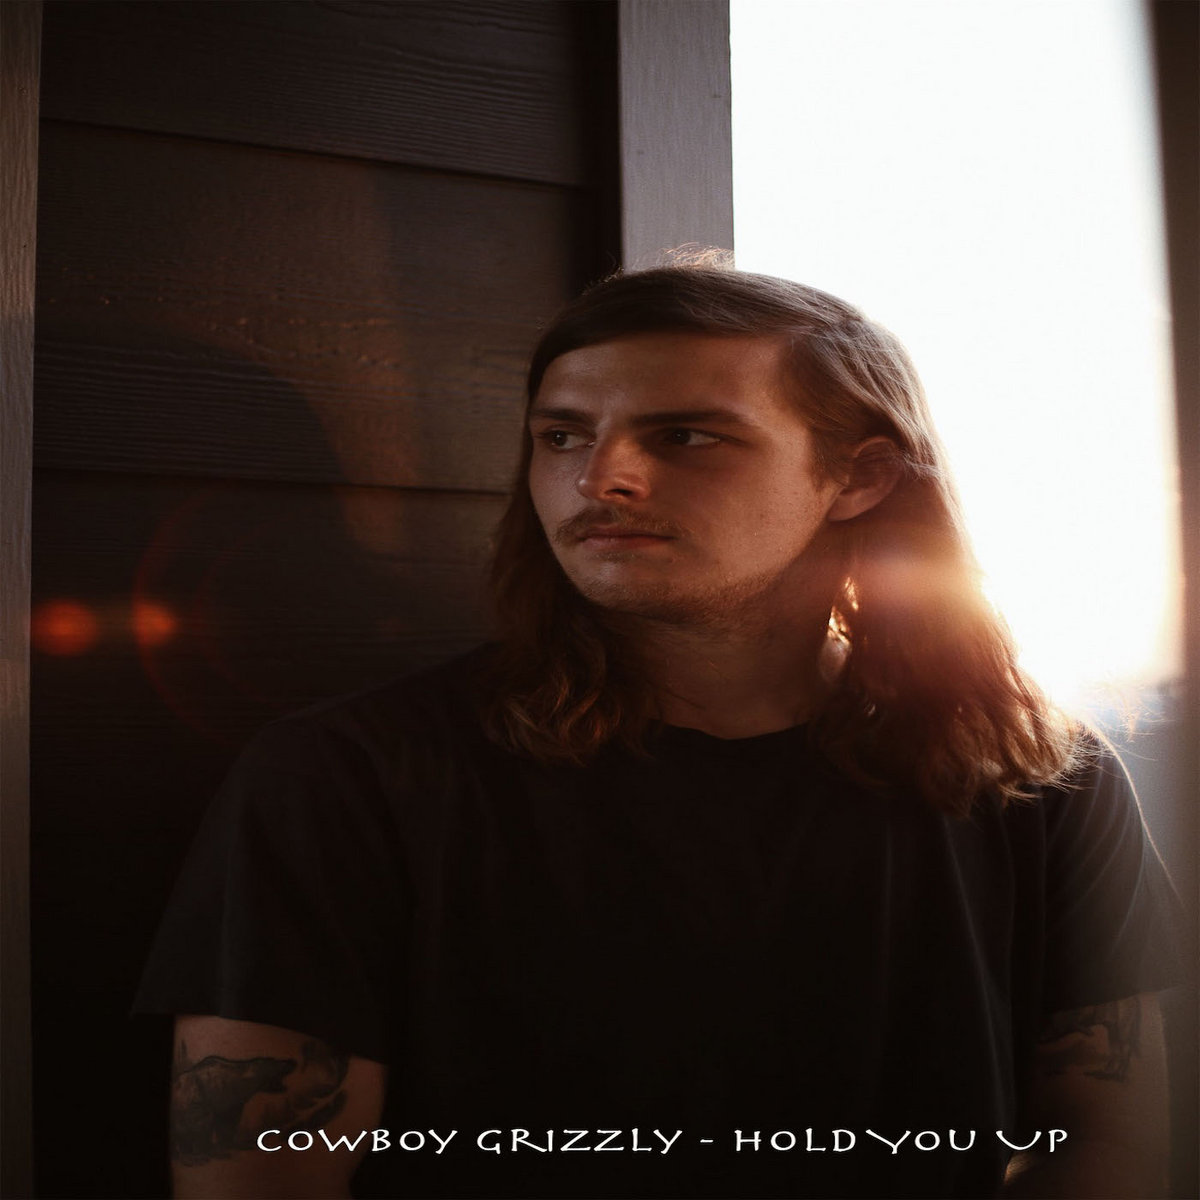 Cowboy Grizzly – COVID-19 and Hold You Up